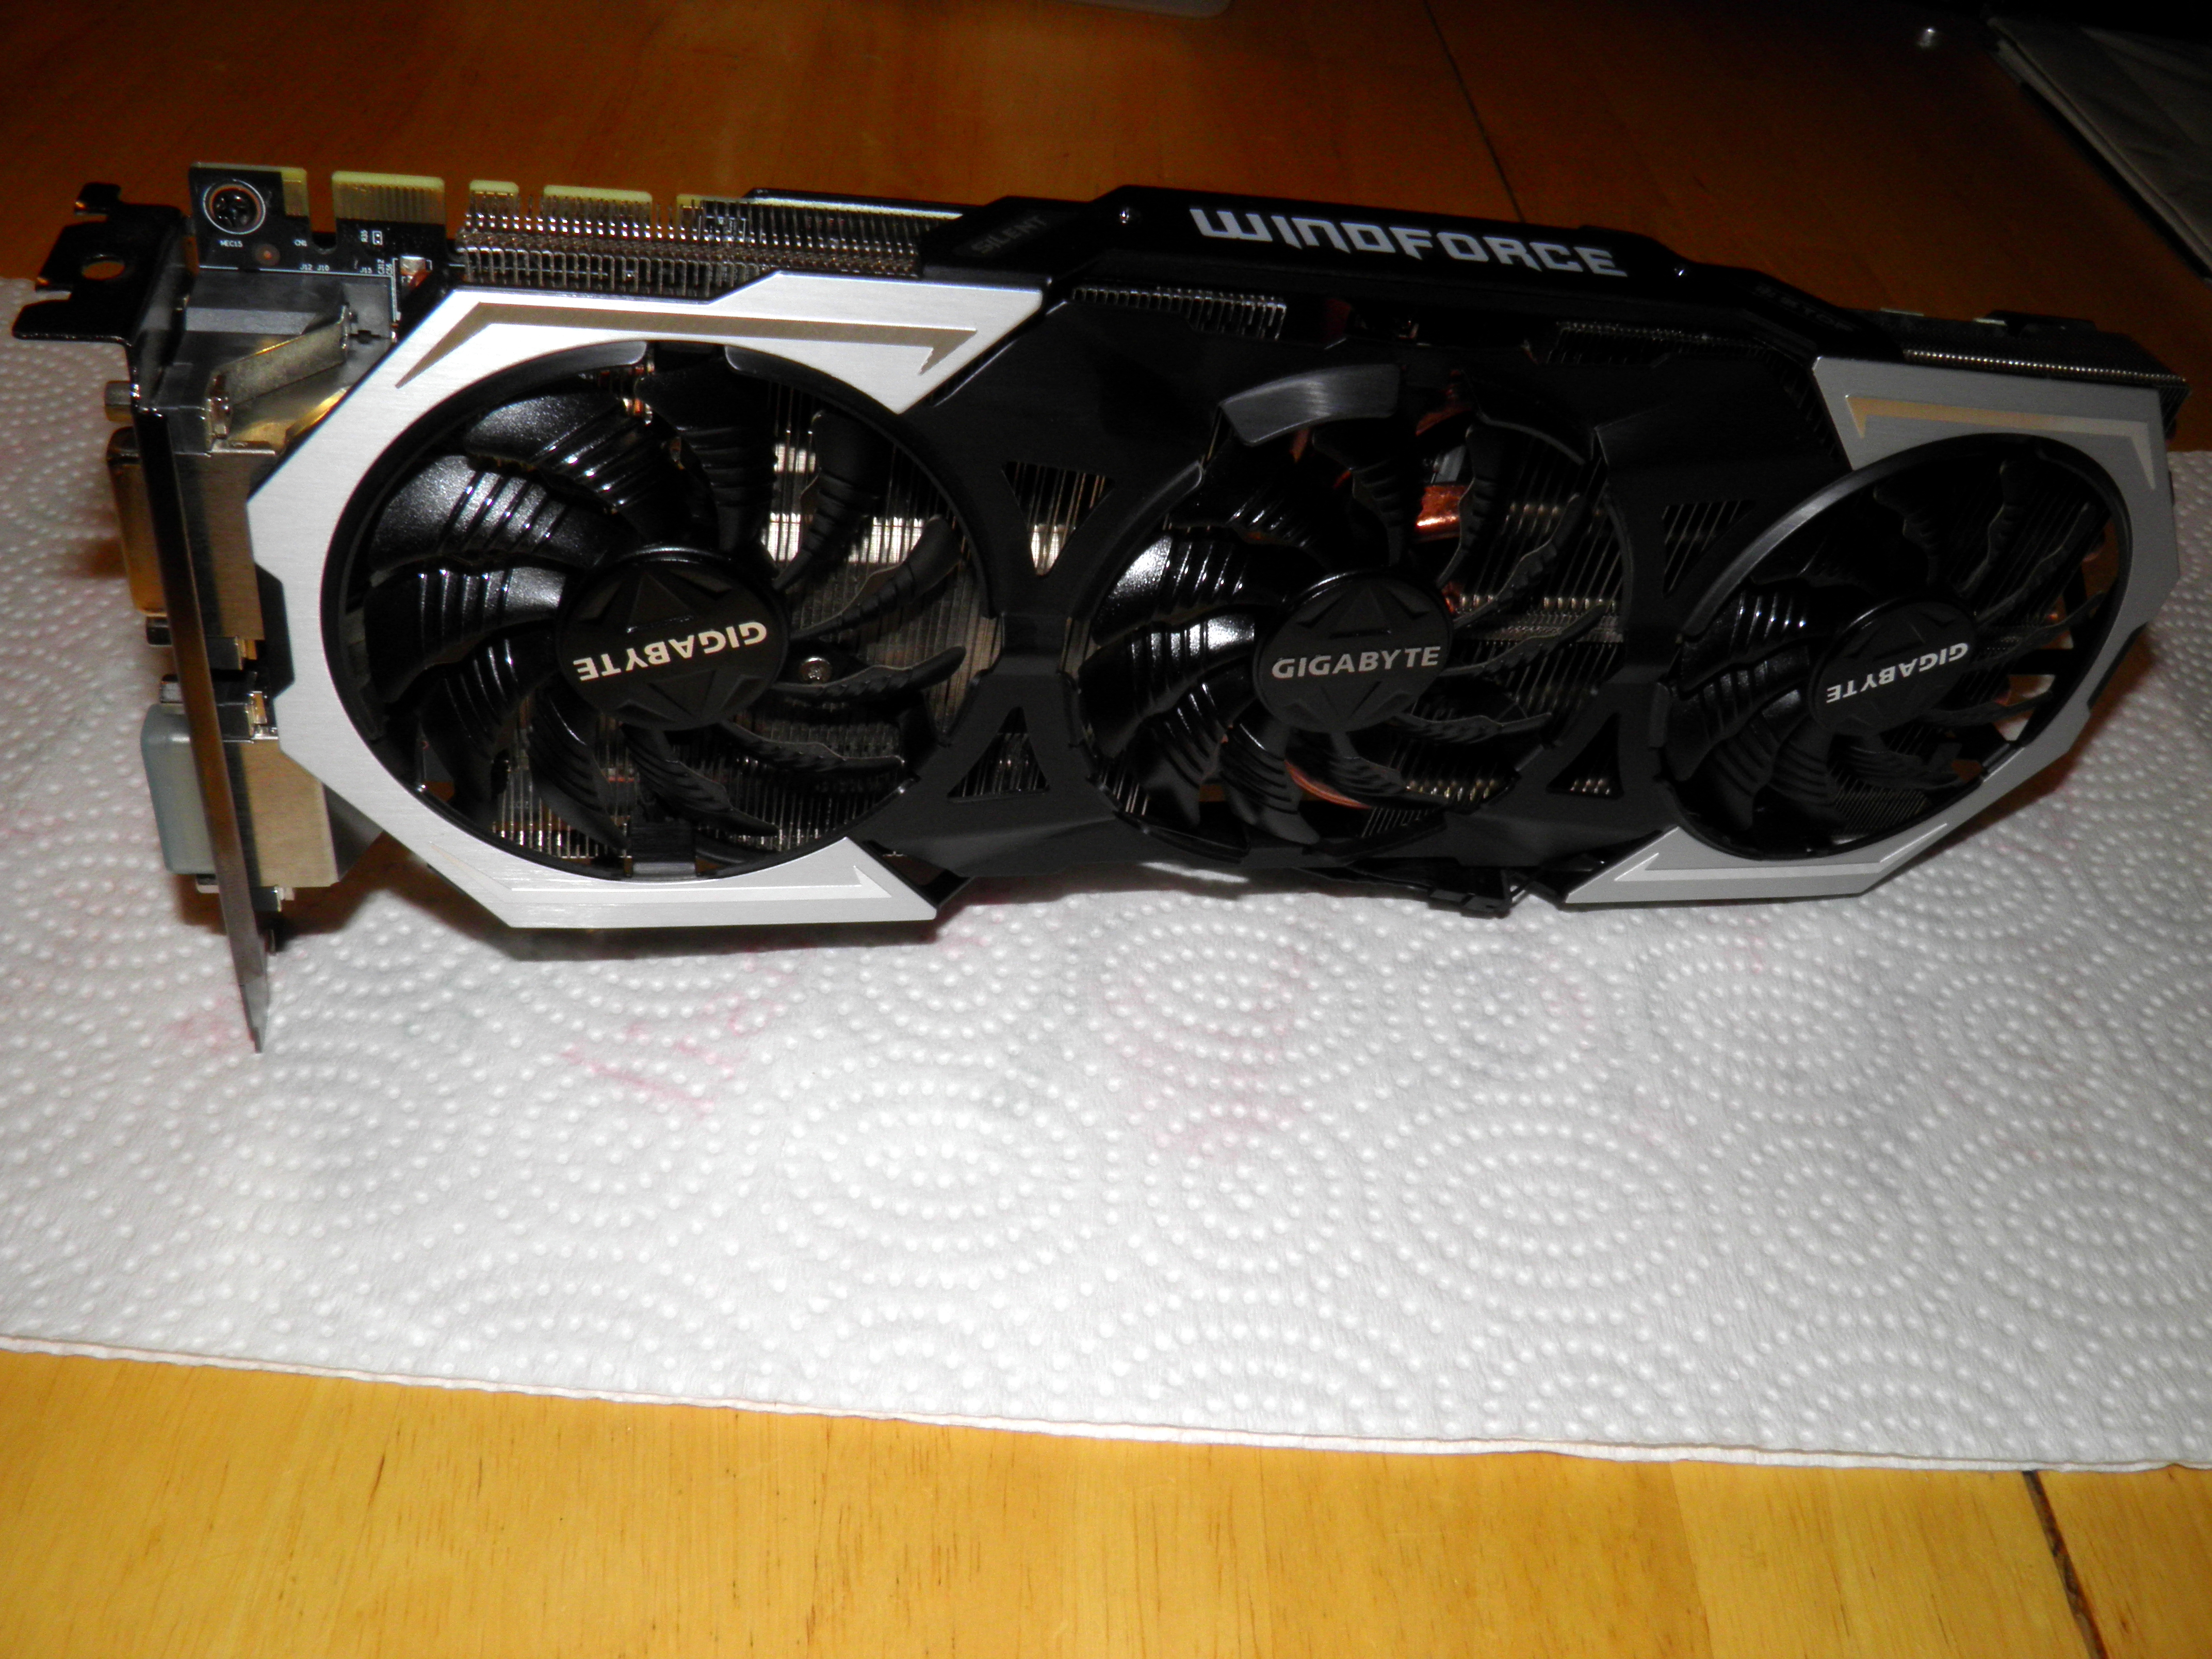 Installing EK full cover WB on Gigabyte GTX 980Ti G1 x 2